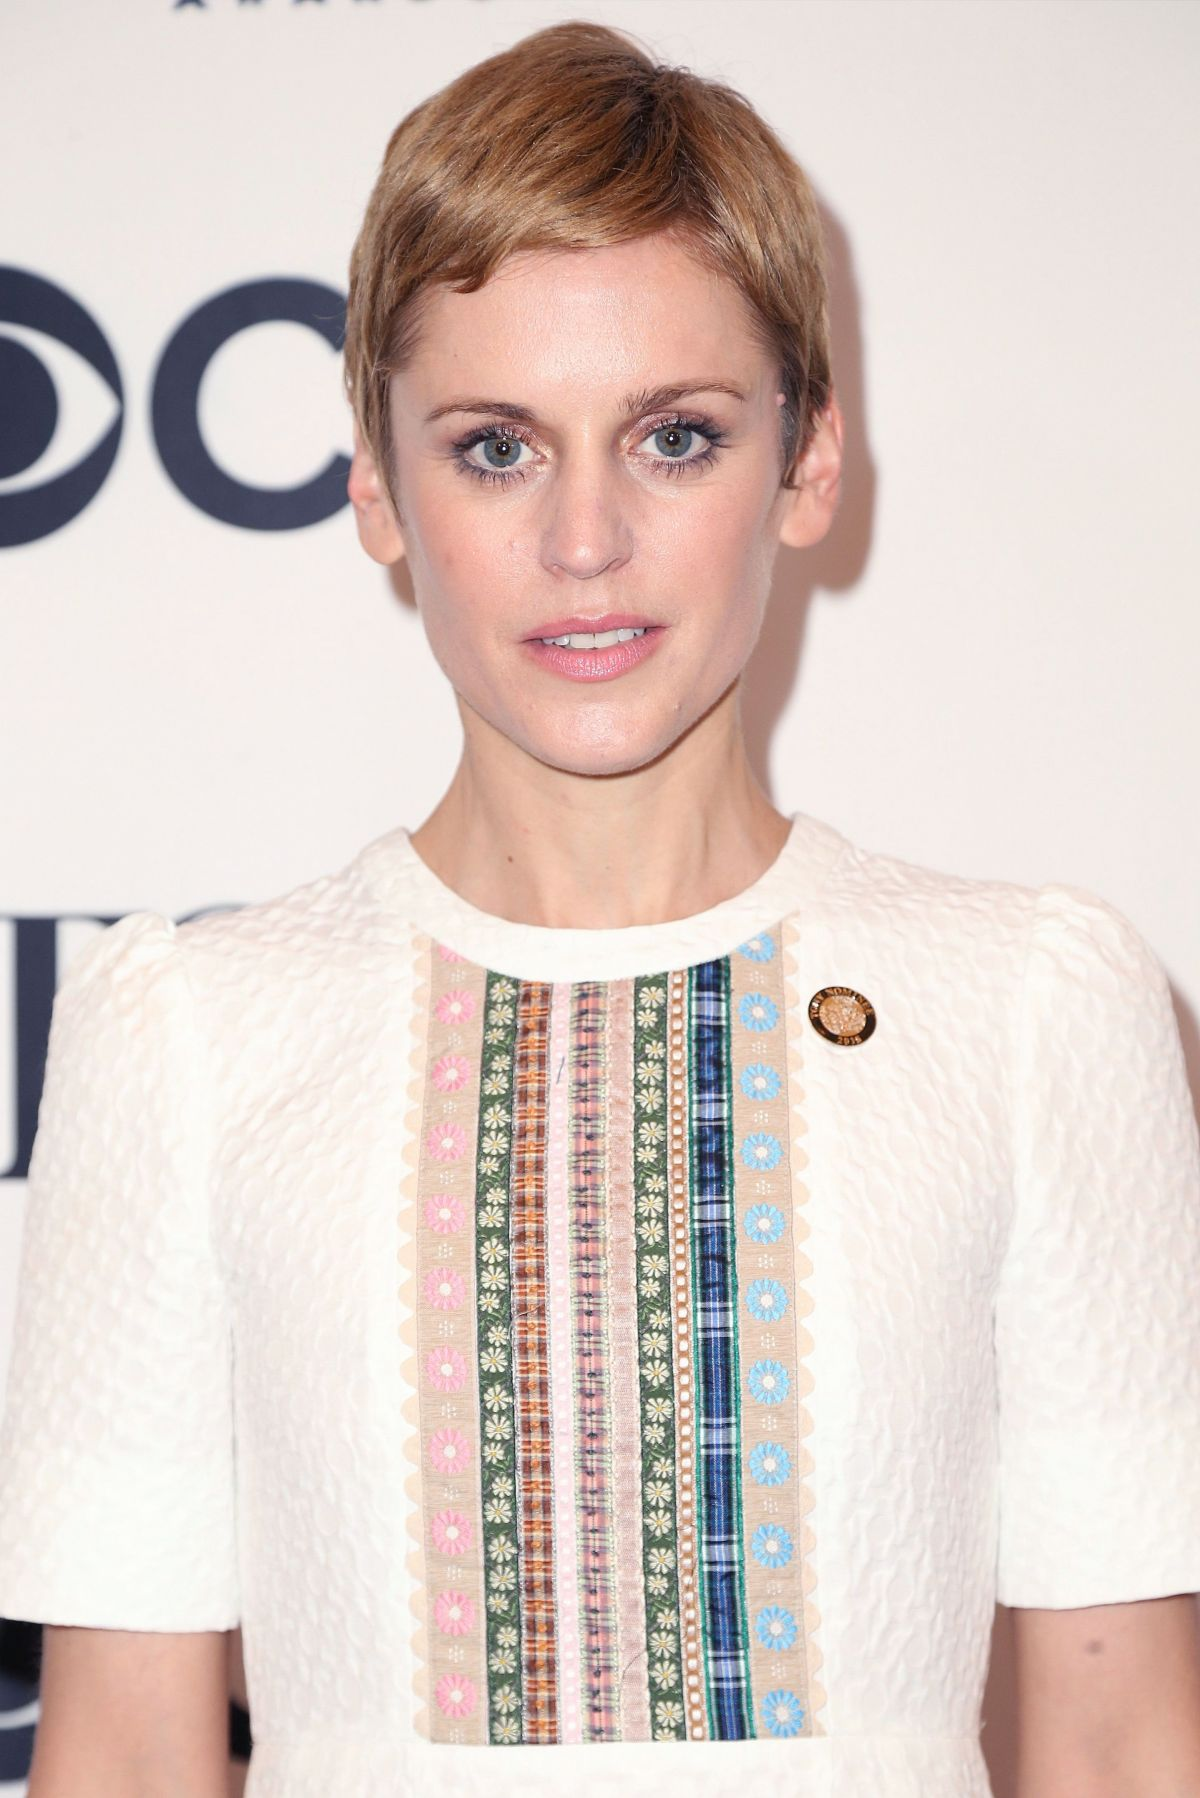 Snapchat Denise Gough nudes (31 foto and video), Pussy, Leaked, Selfie, underwear 2020